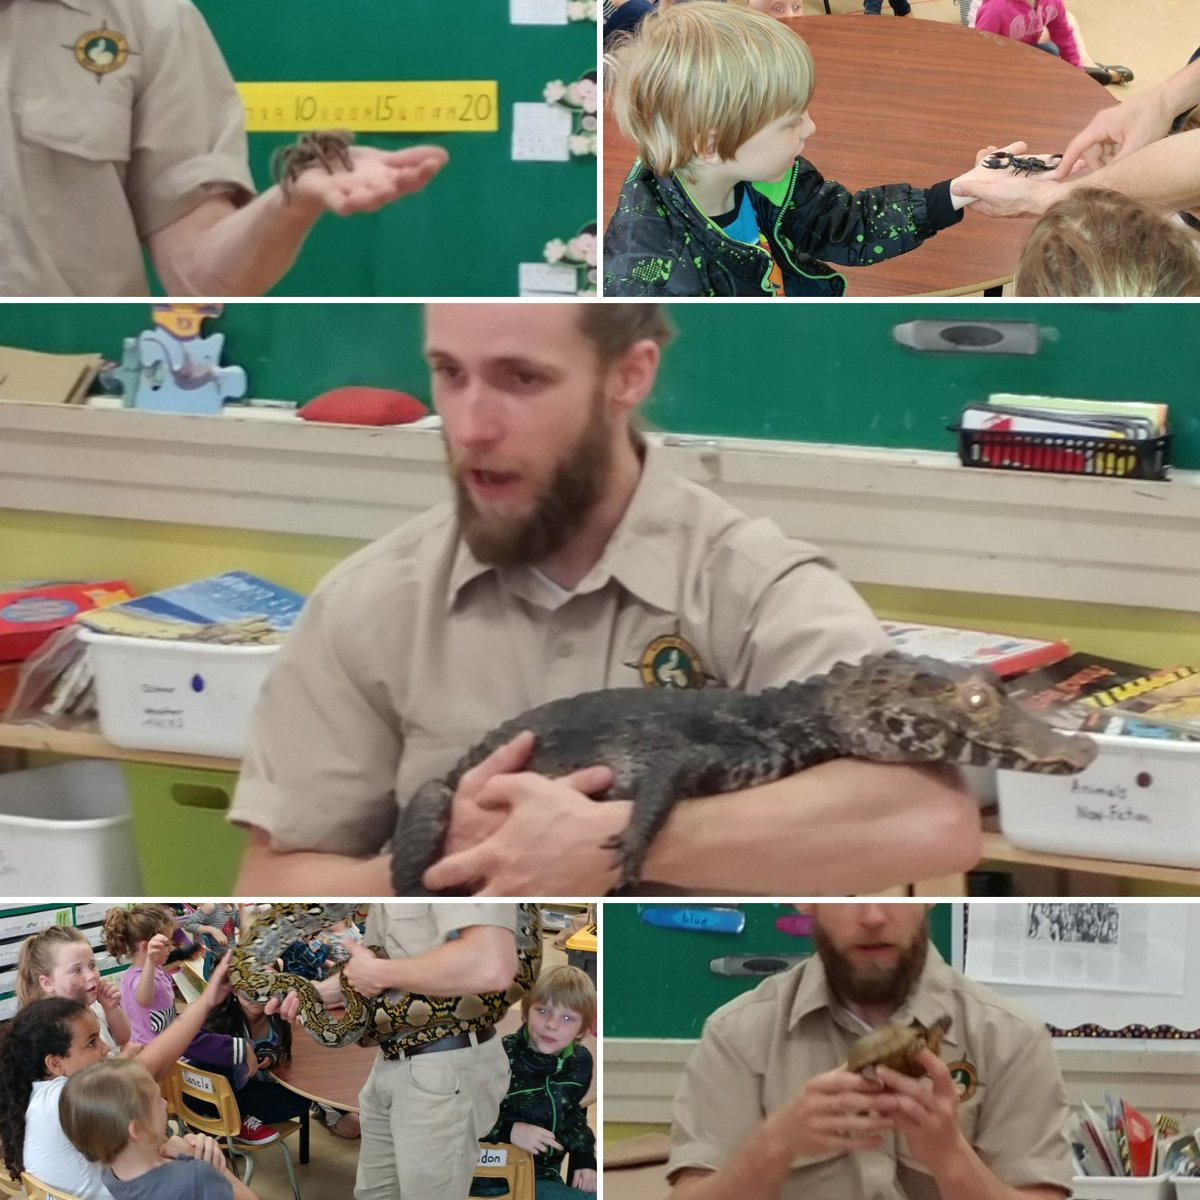 Thanks Ray&#39;s Reptiles for an AMAZING learning experience ! #reptiles #arachnids #amphibians #ohmy<br>http://pic.twitter.com/Ieth4zP1UW